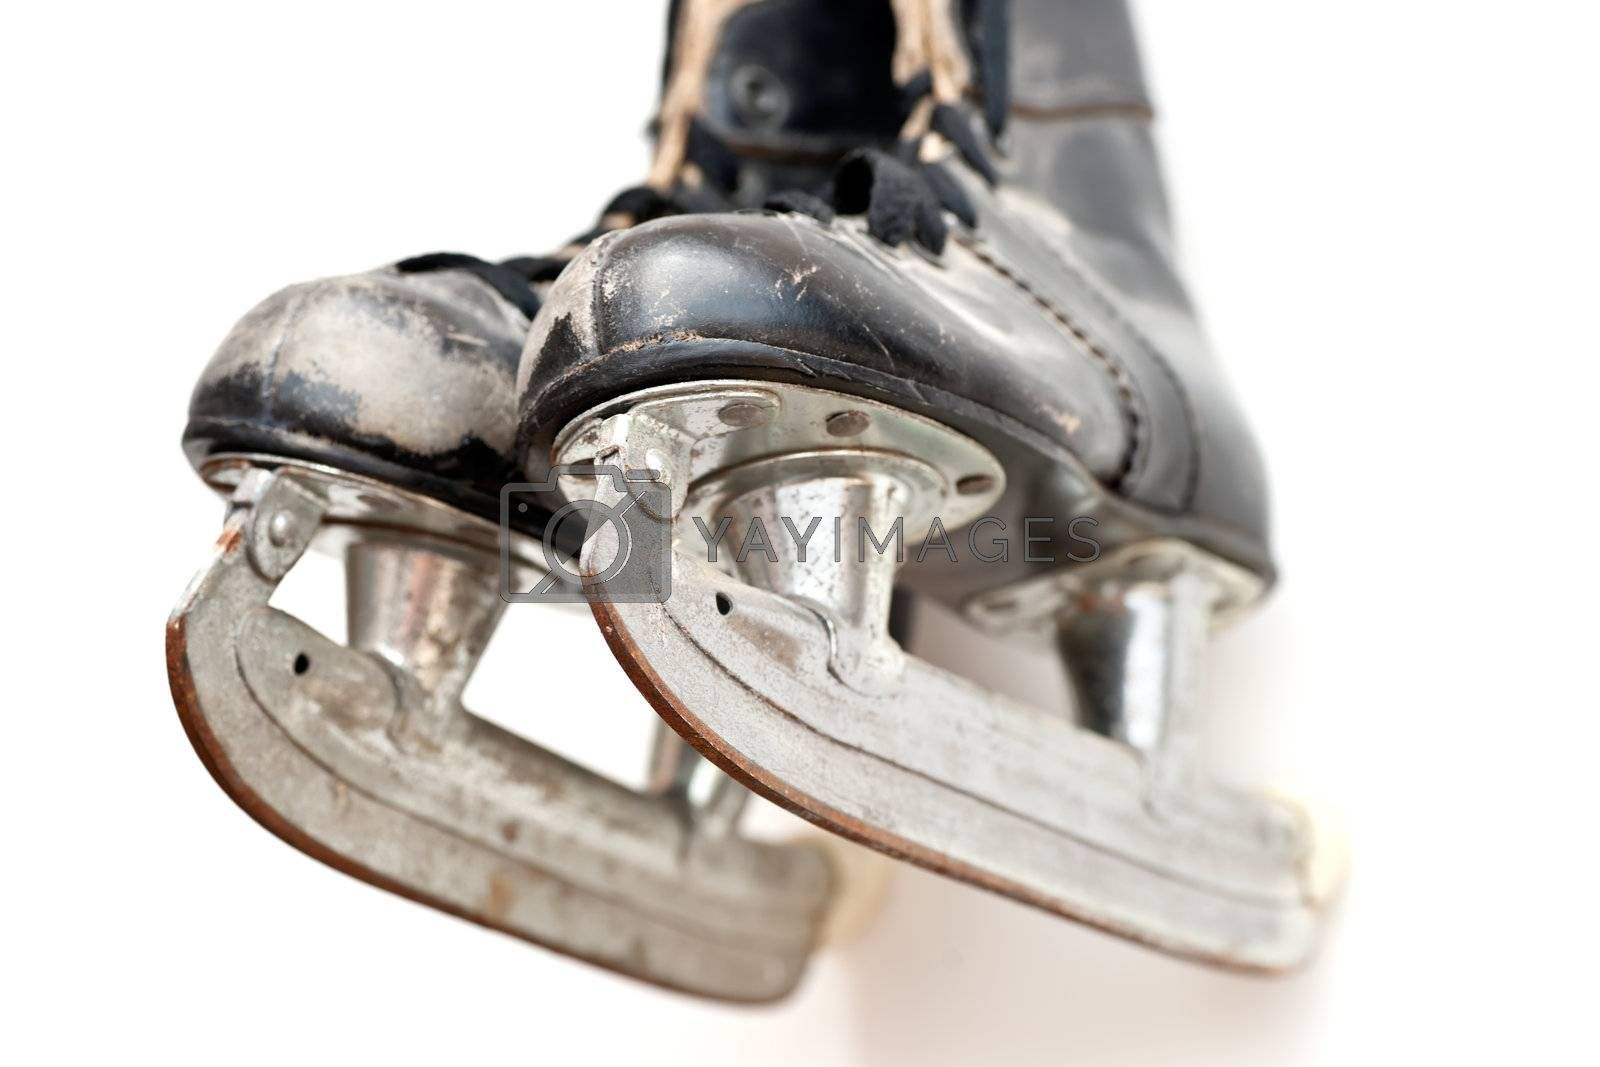 Old hockey skates hanging on the wall